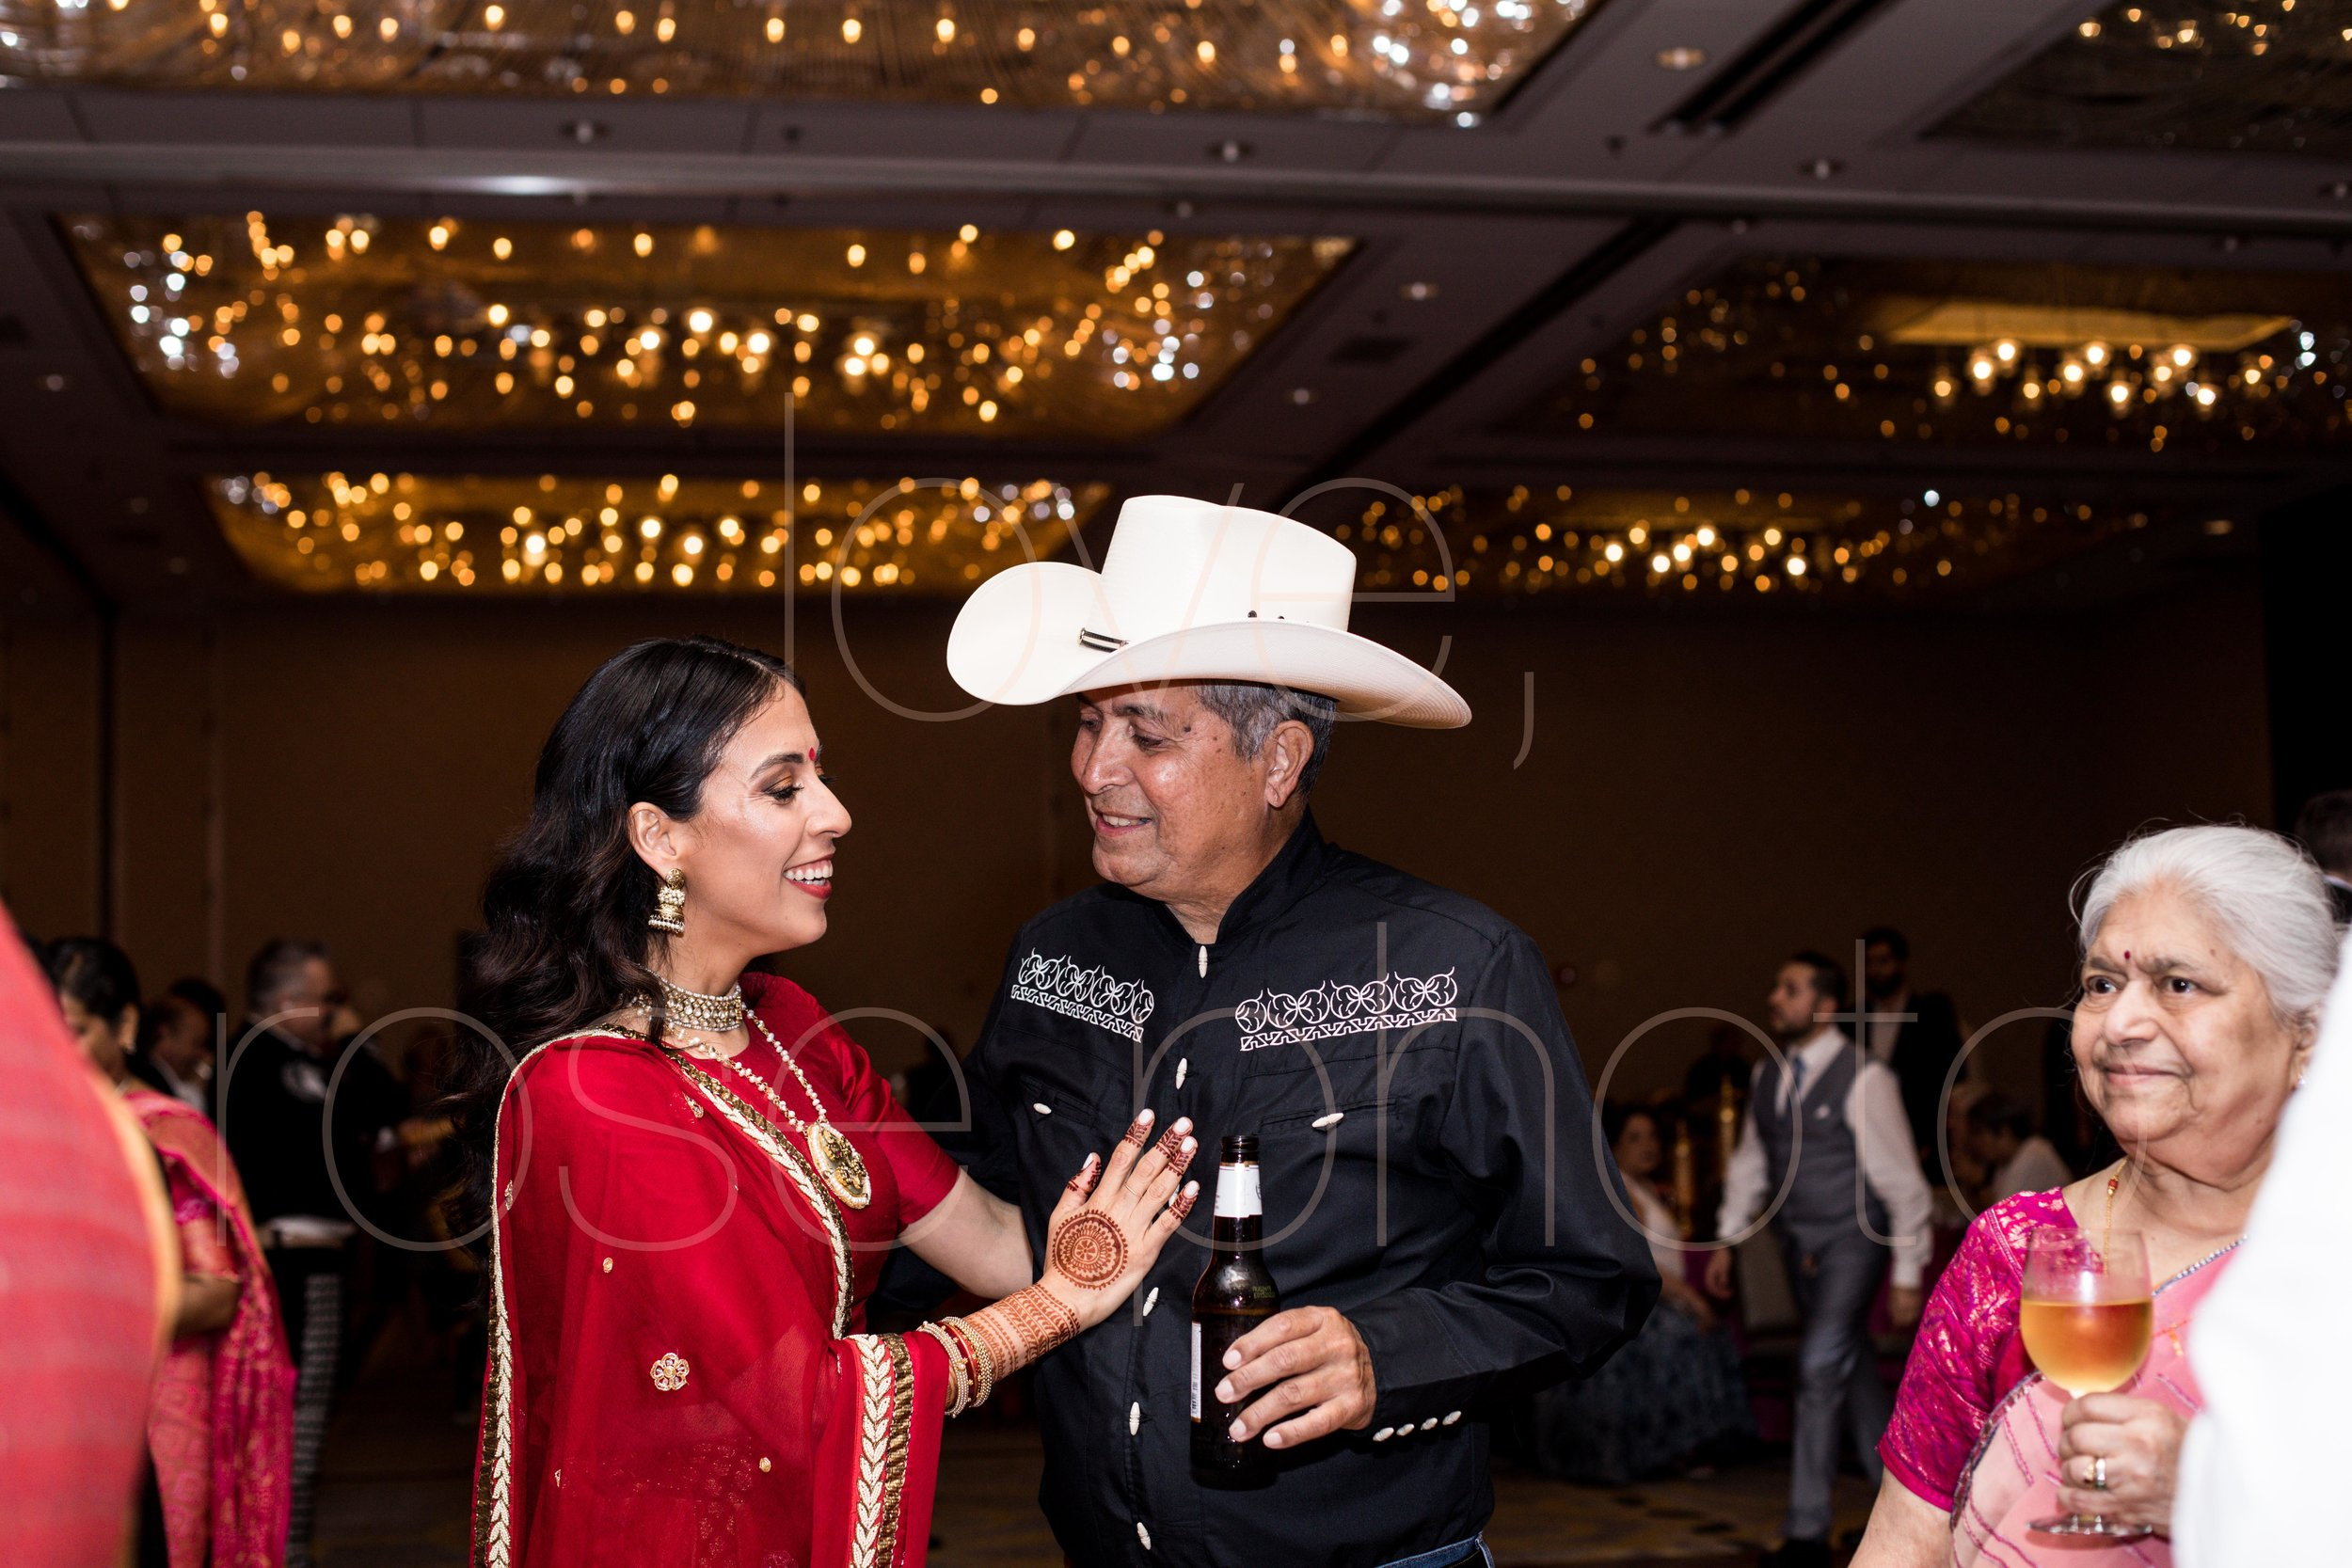 best chicago indian wedding photographer rose photo video collective-5.jpg